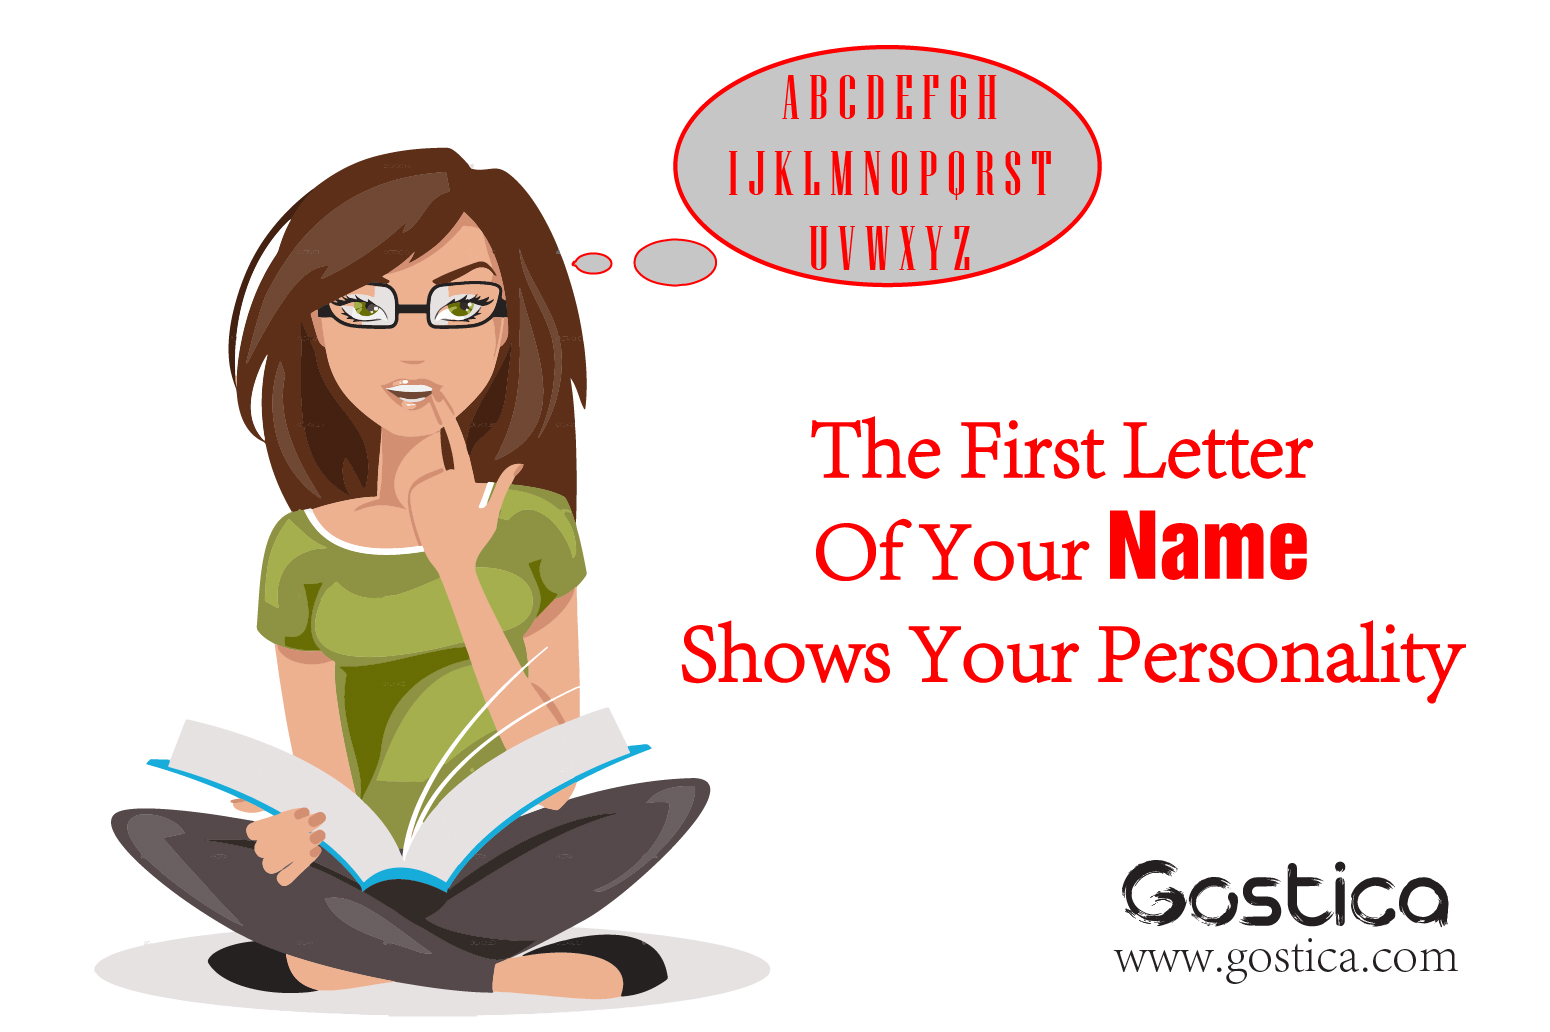 The-First-Letter-01-01.jpg